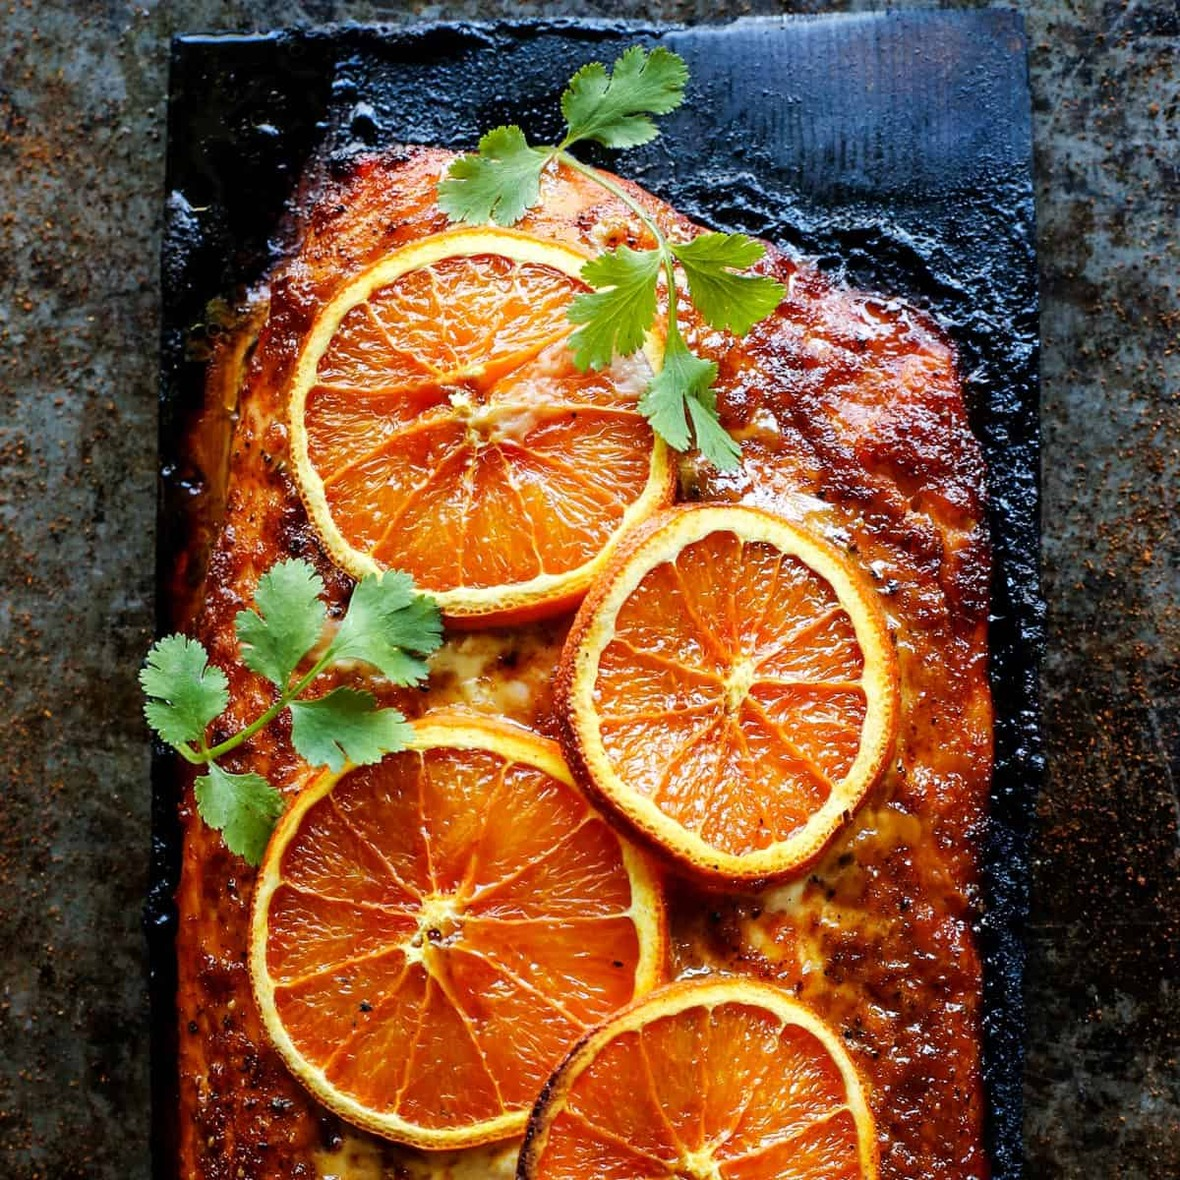 grilled-chipotle-orange-salmon AFarmgirlsDabbles AFD-1-sq-1